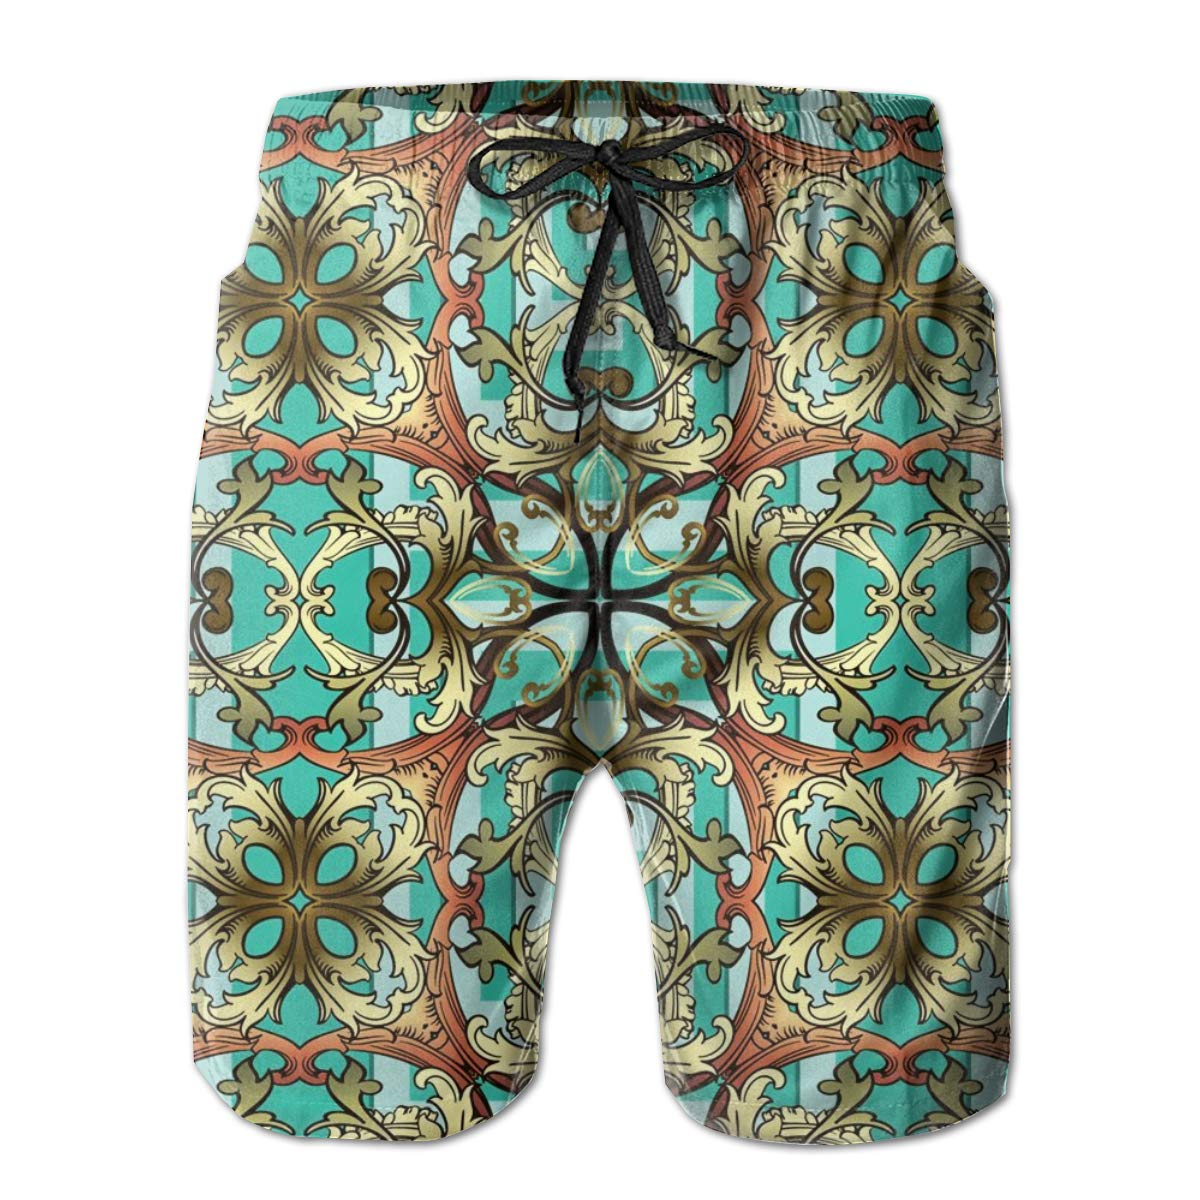 SARA NELL Mens Shorts Gold Baroque Pattern Greek Key Meanders Quick Dry Swim Trunks Beach Board Shorts